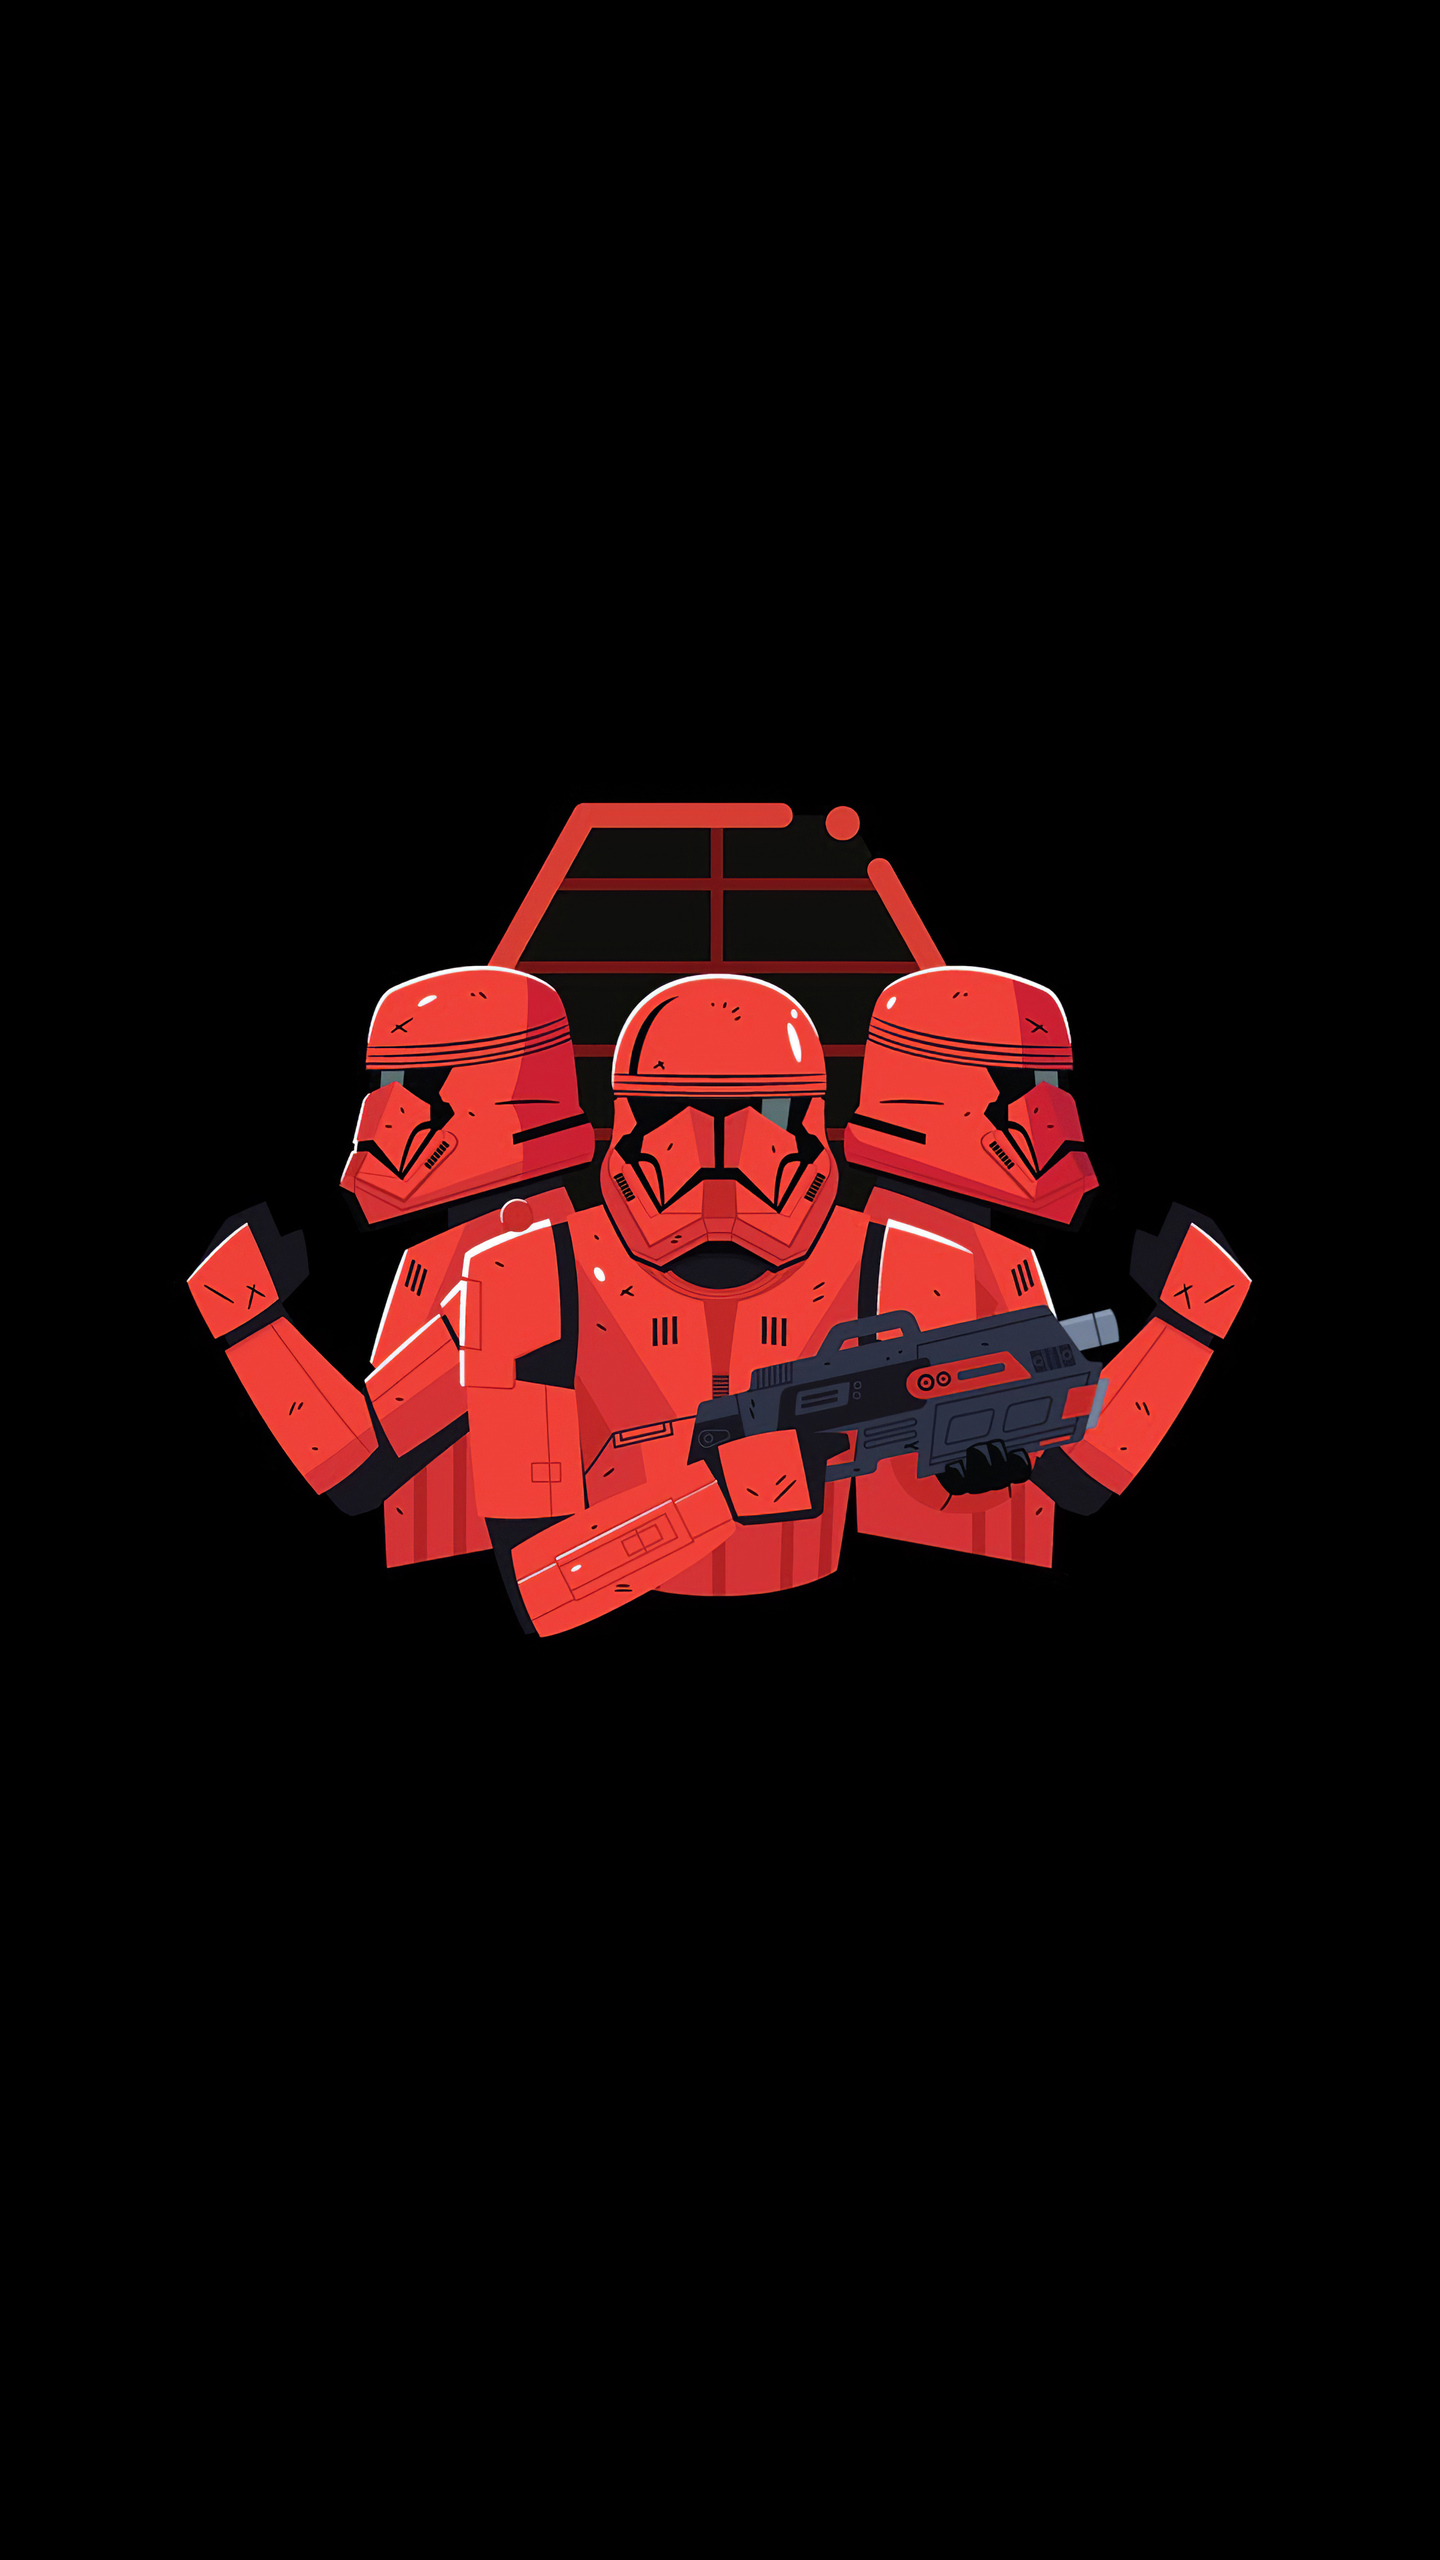 1440x2560 Star Wars Stormtrooper Minimal Art Samsung Galaxy S6 S7 Google Pixel Xl Nexus 6 6p Lg G5 Hd 4k Wallpapers Images Backgrounds Photos And Pictures